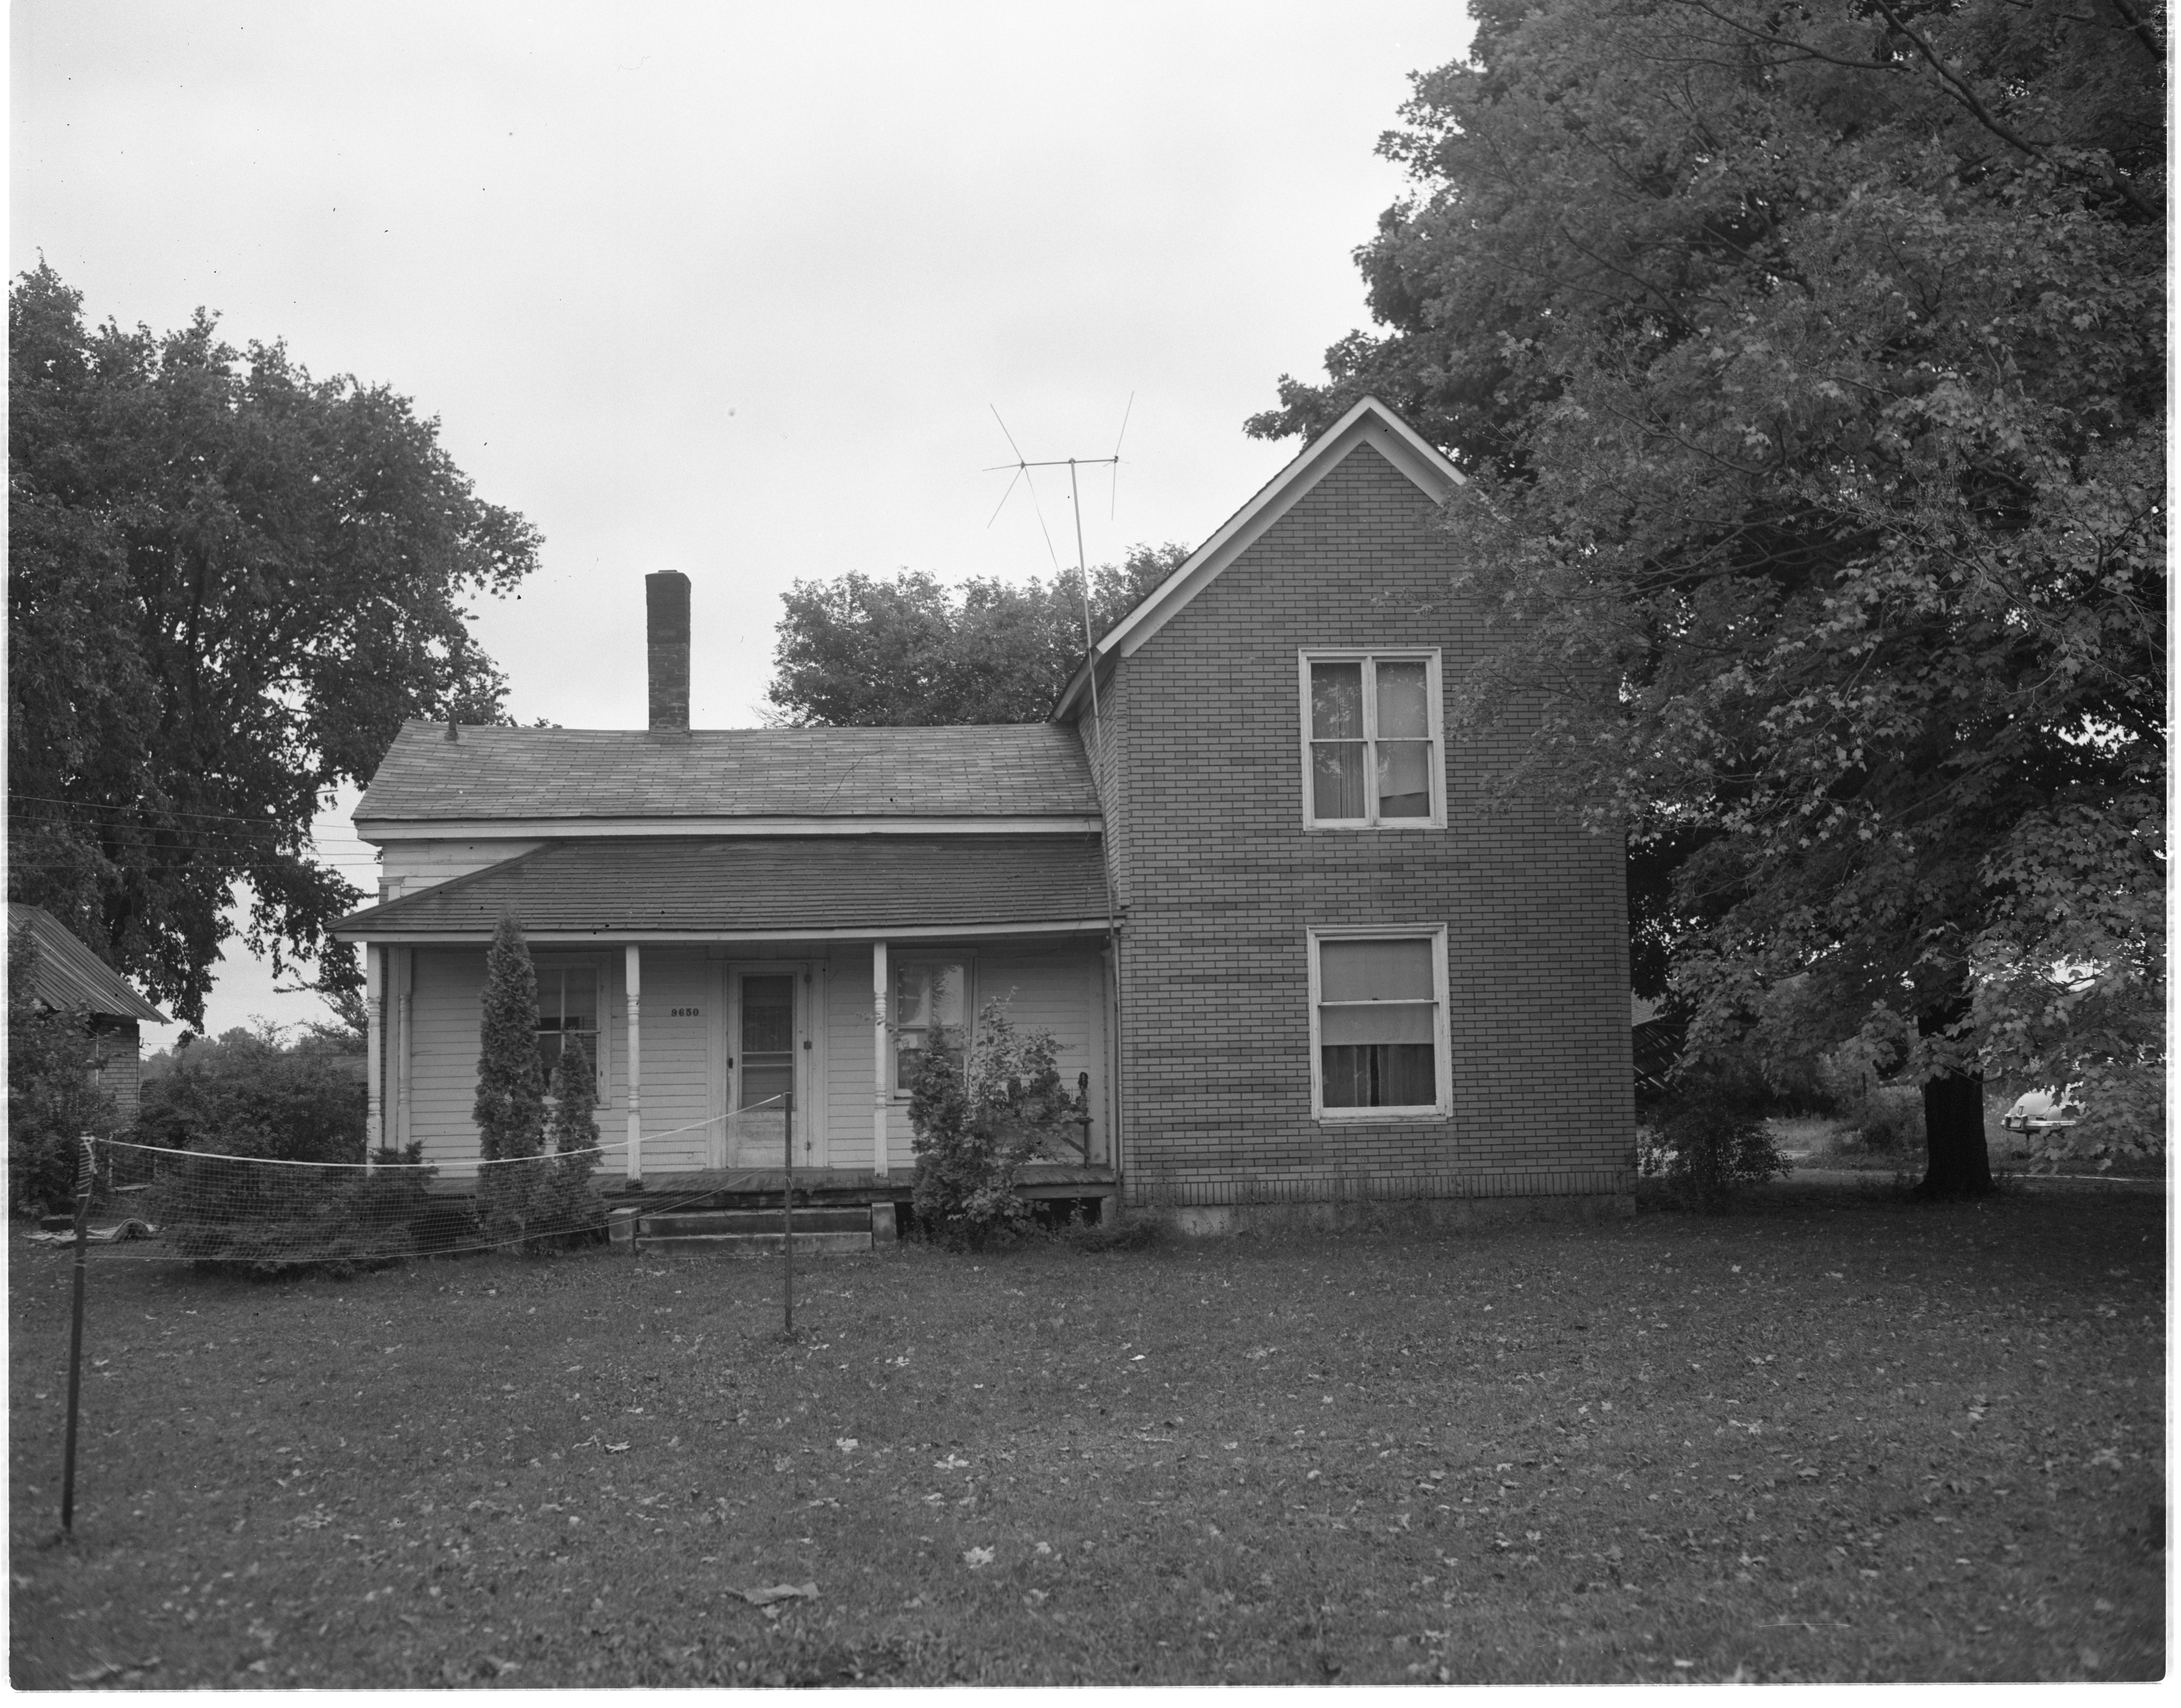 9650 Geddes Road - Scene Of Murder, September 1958 image